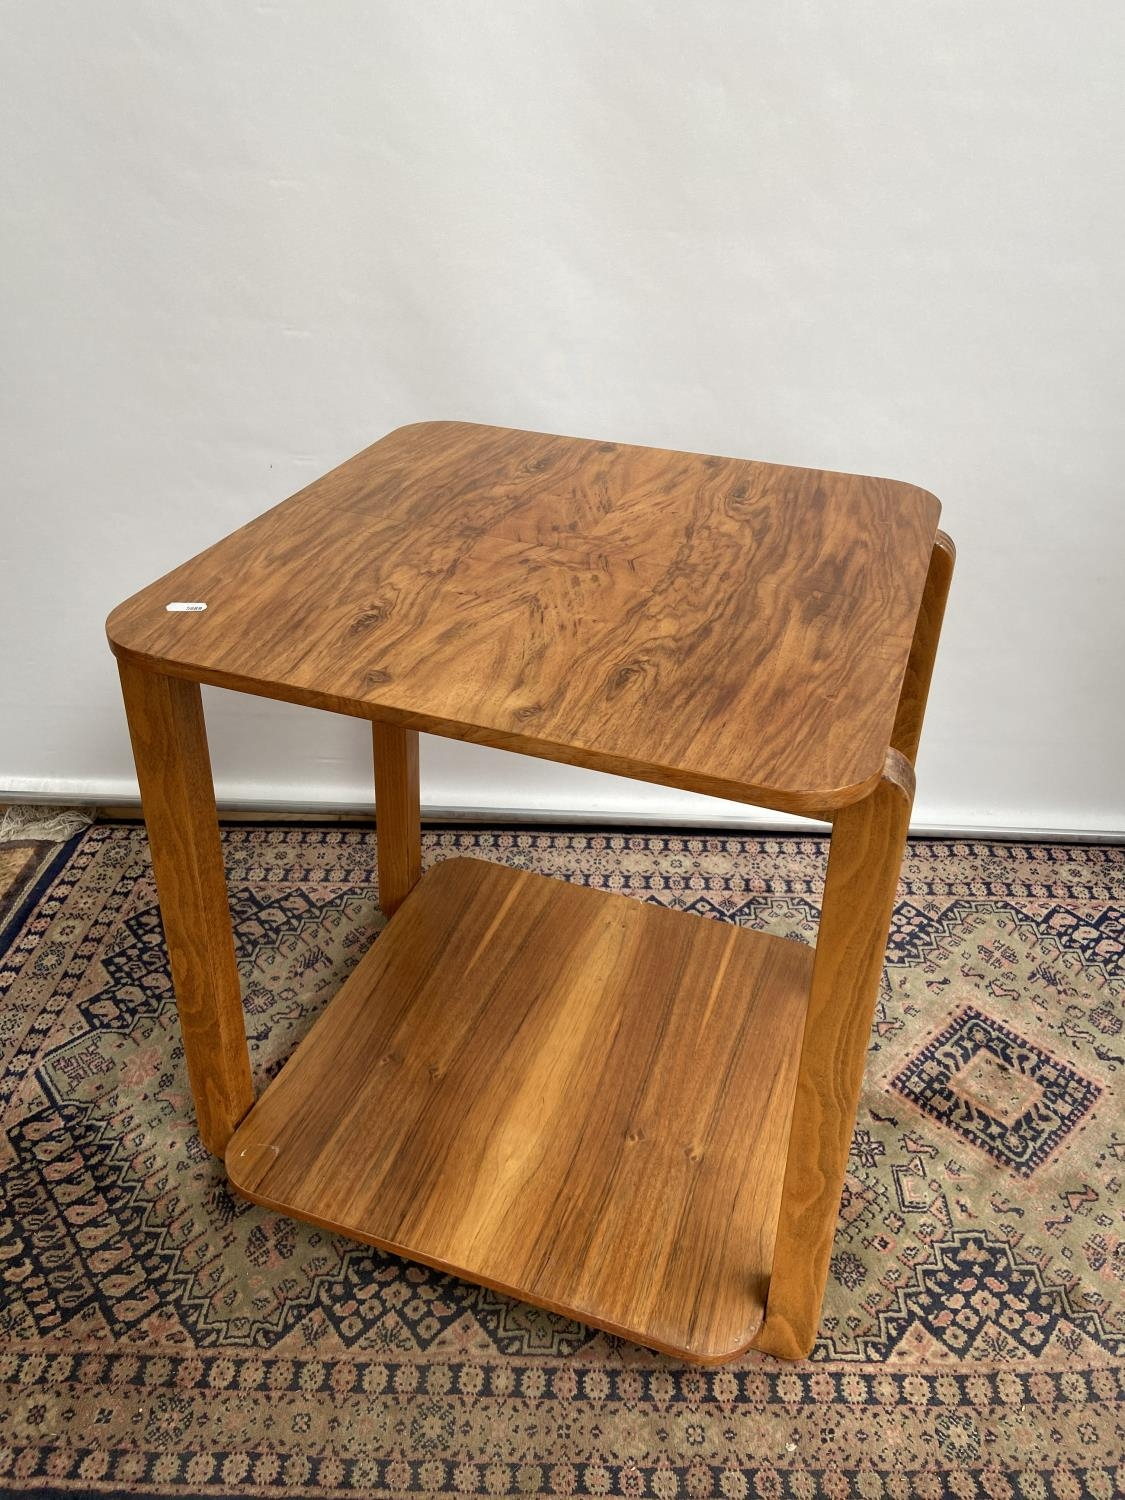 A stylish mid century two tier table [60x50x50cm]